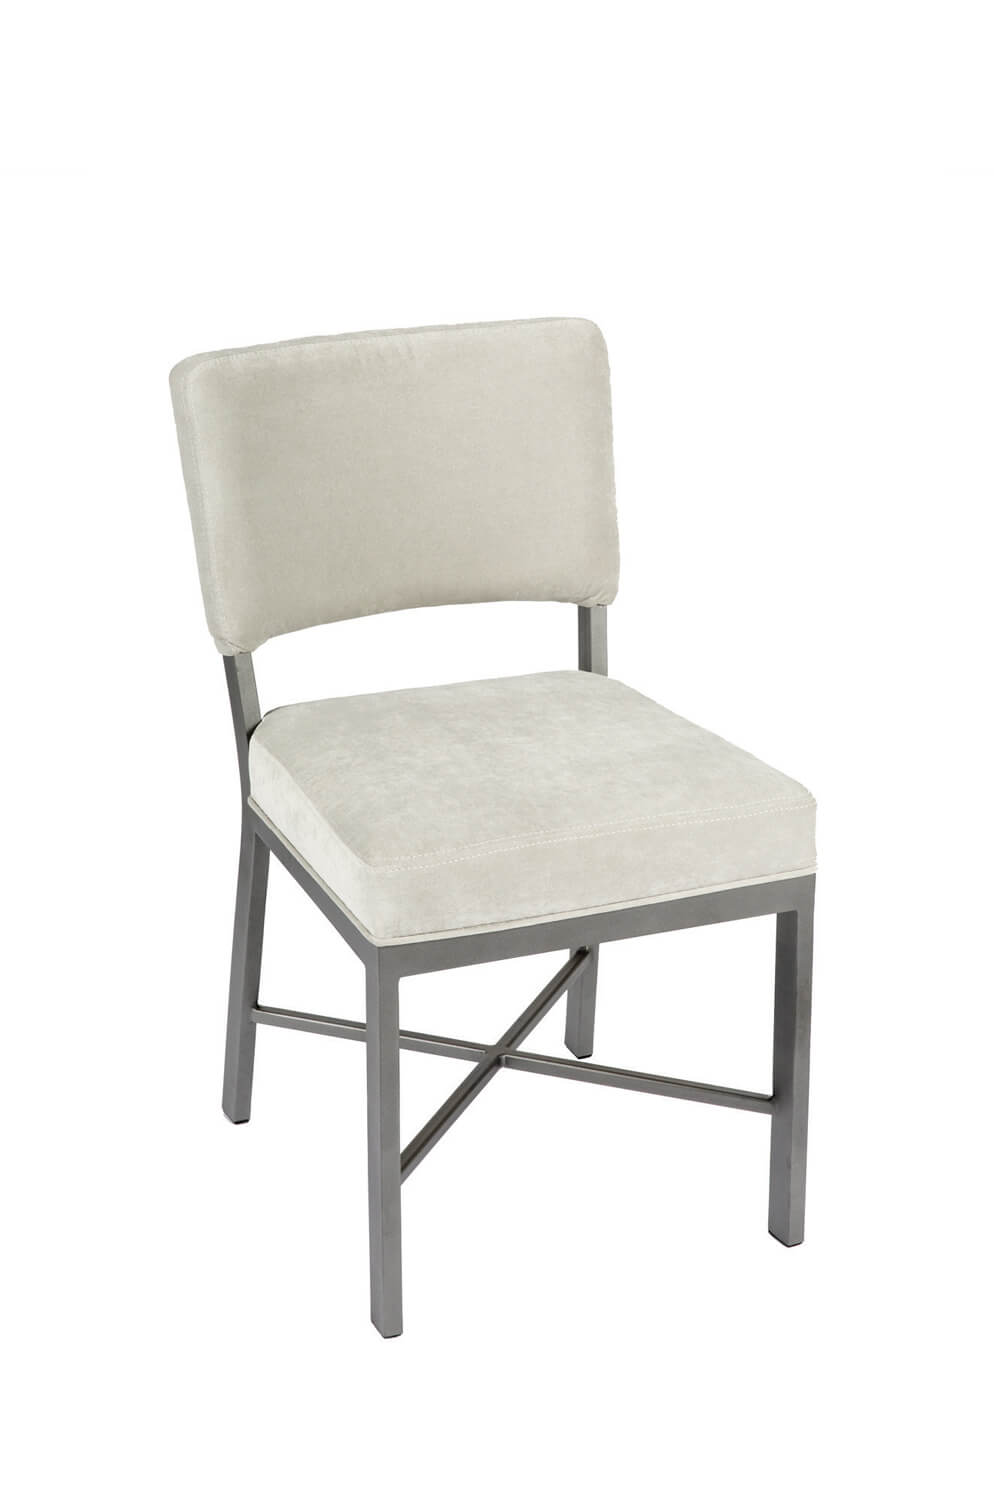 Miami Modern Upholstered Dining Chair